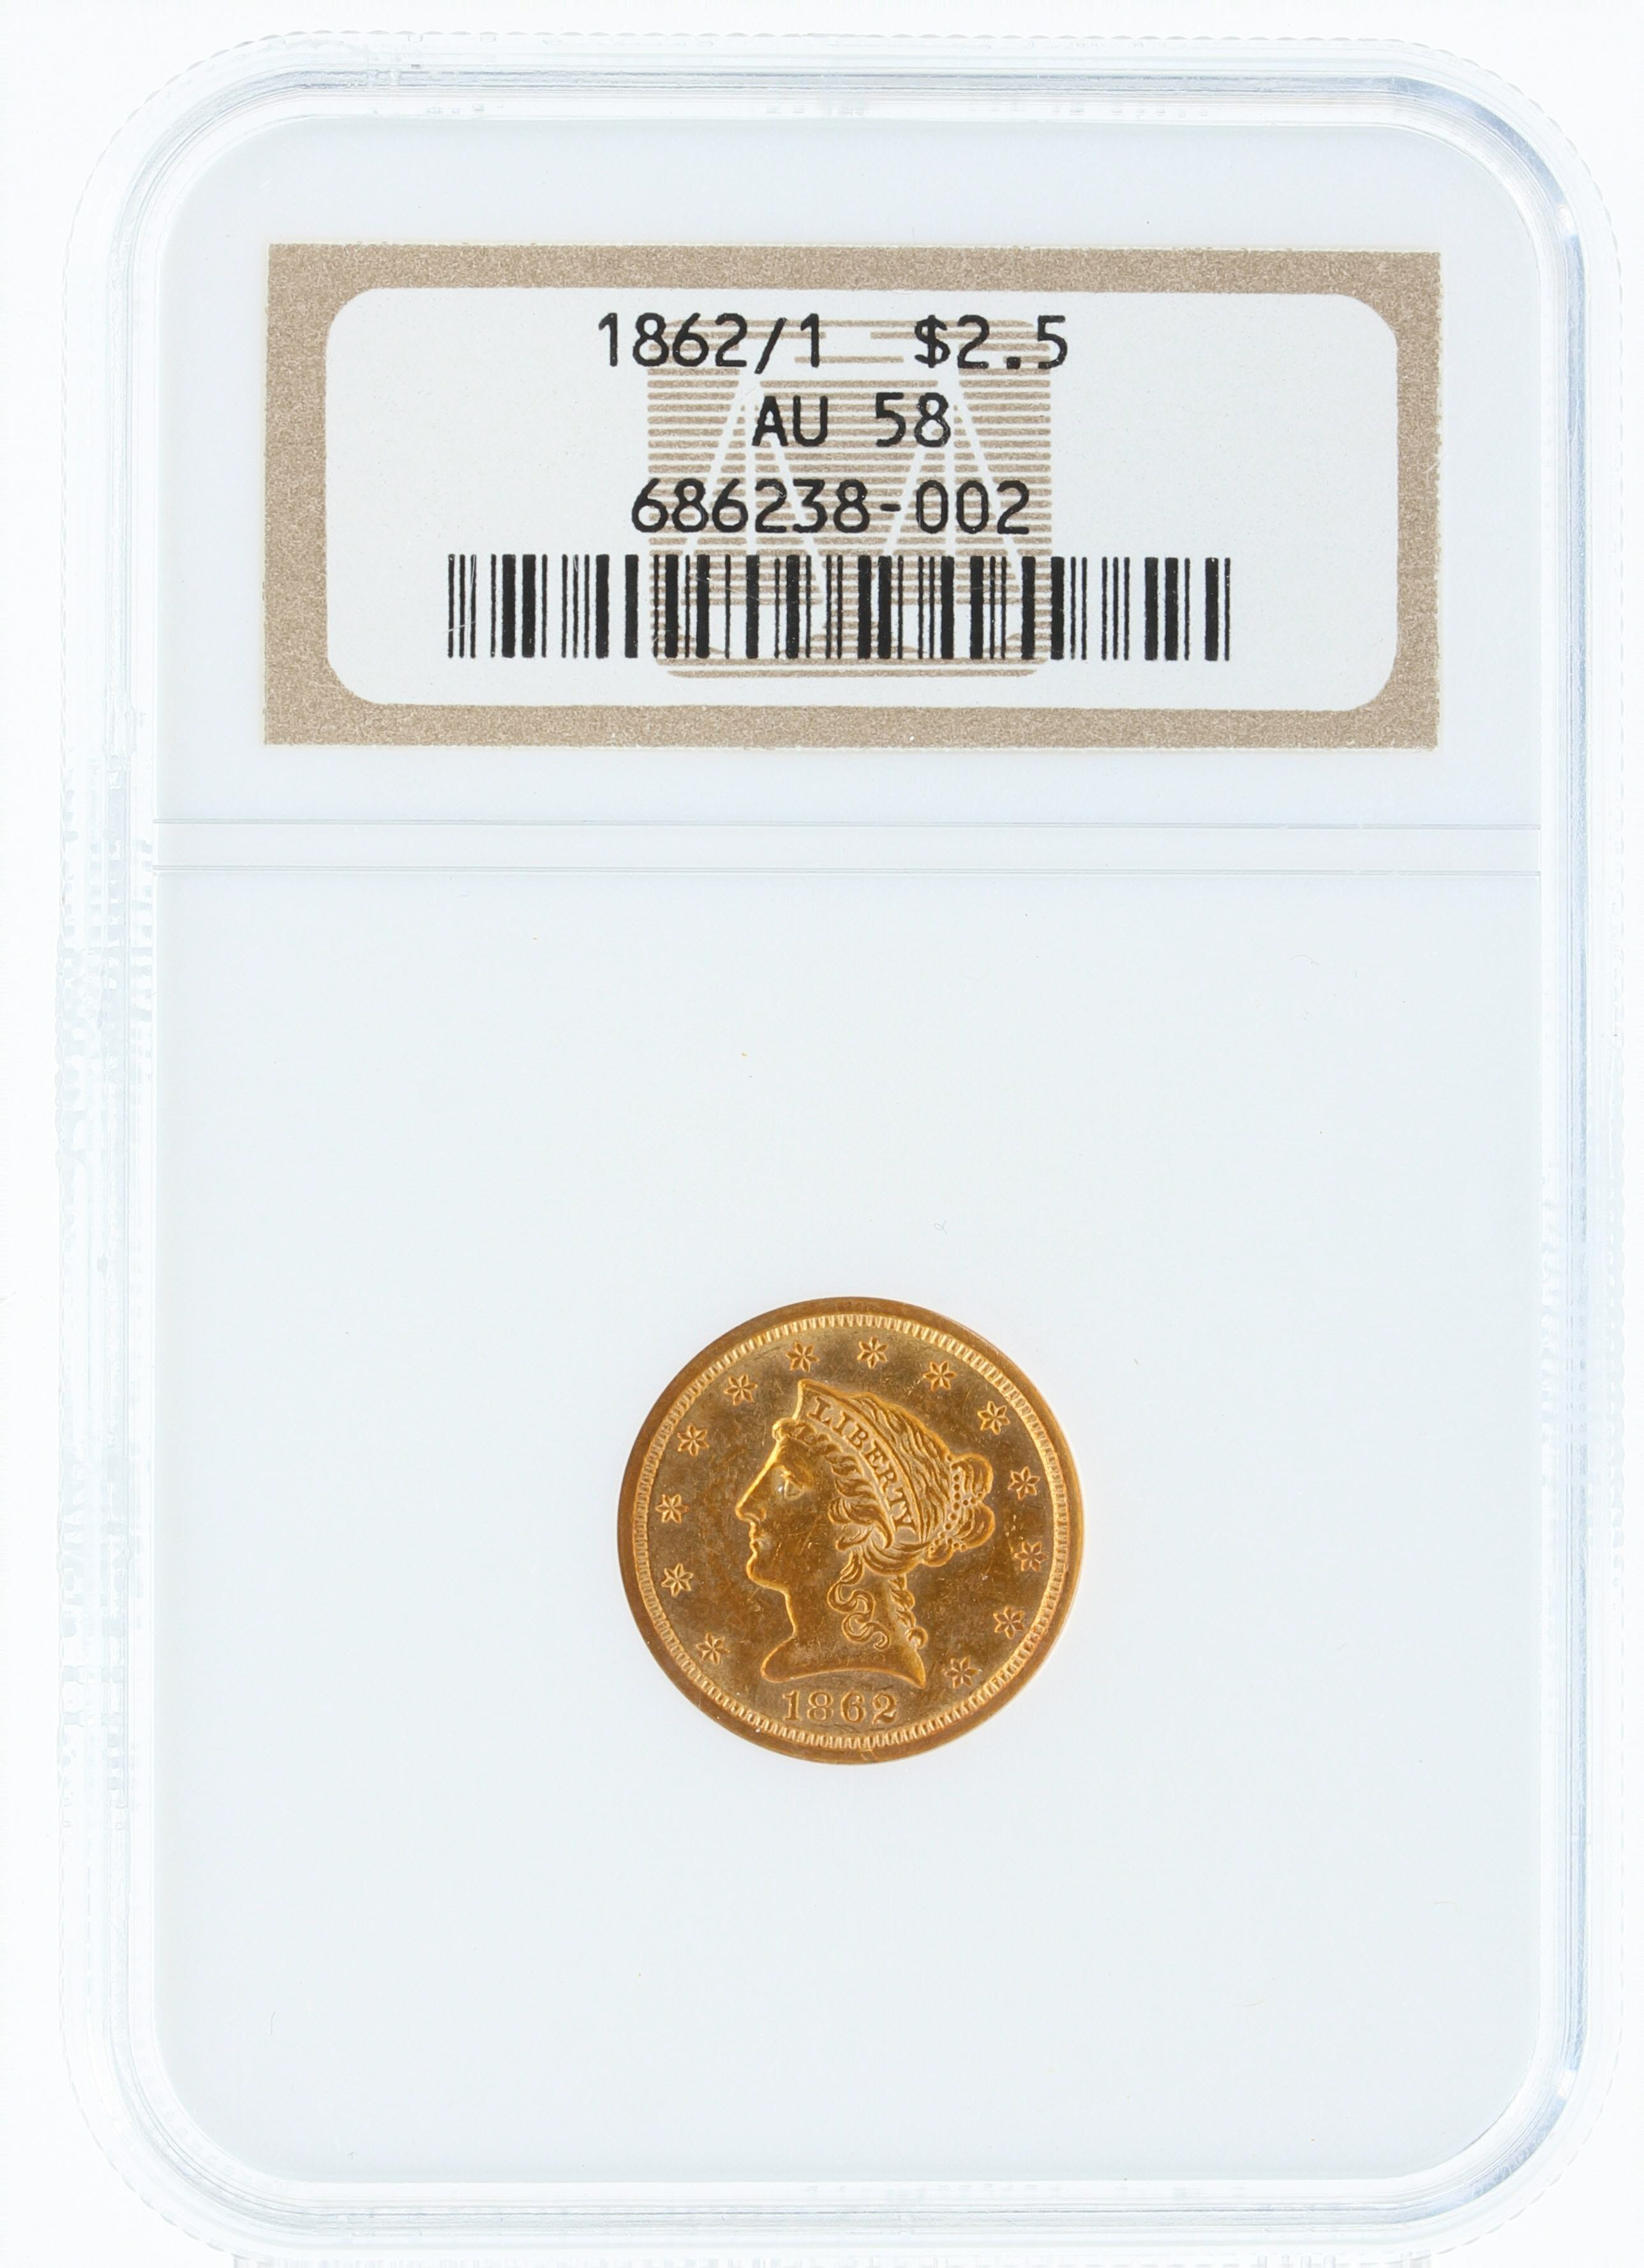 Collectors Chair:  1862/1 NGC AU58 $2.5 Overdate Rare Coin